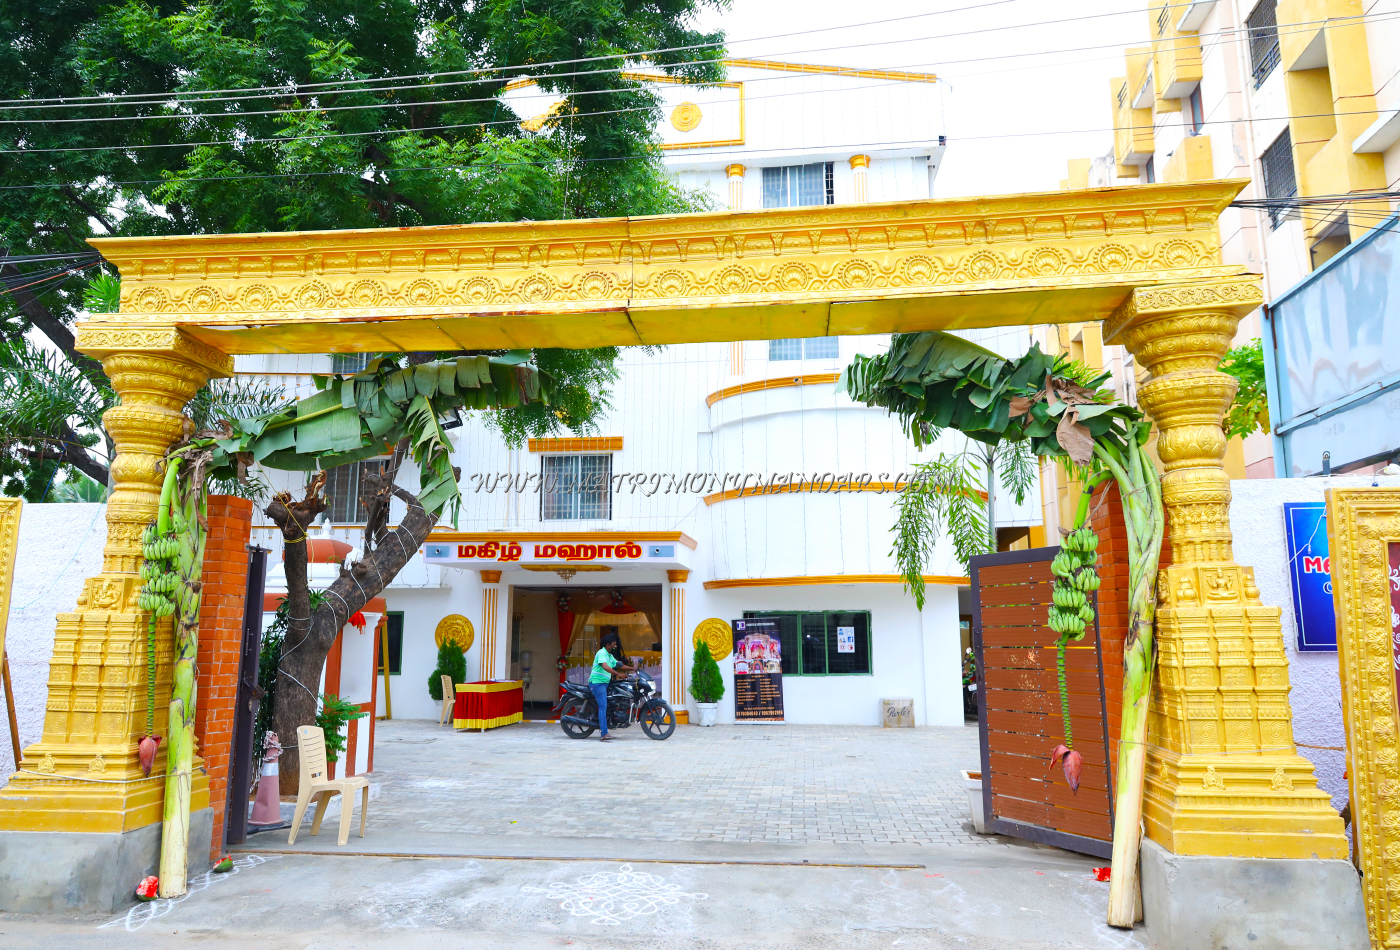 Find the availability of the Magizh Mahal Thirumana Mandapam (A/C) in Chrompet, Chennai and avail special offers